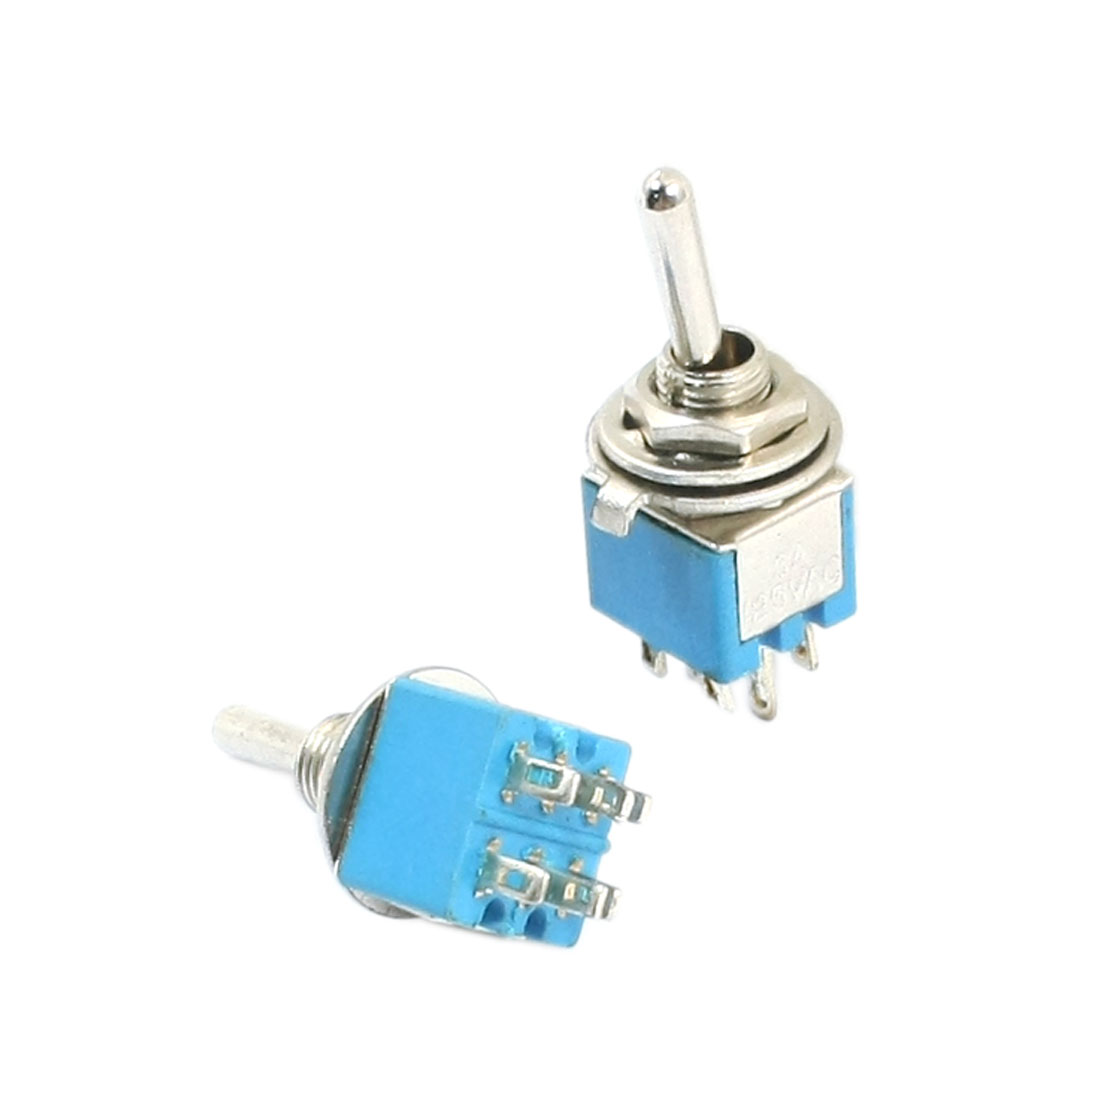 DPDT ON/ON 2 Position 6 Pin Circuit Control Toggle Switch AC 125V 3A Blue 2pcs